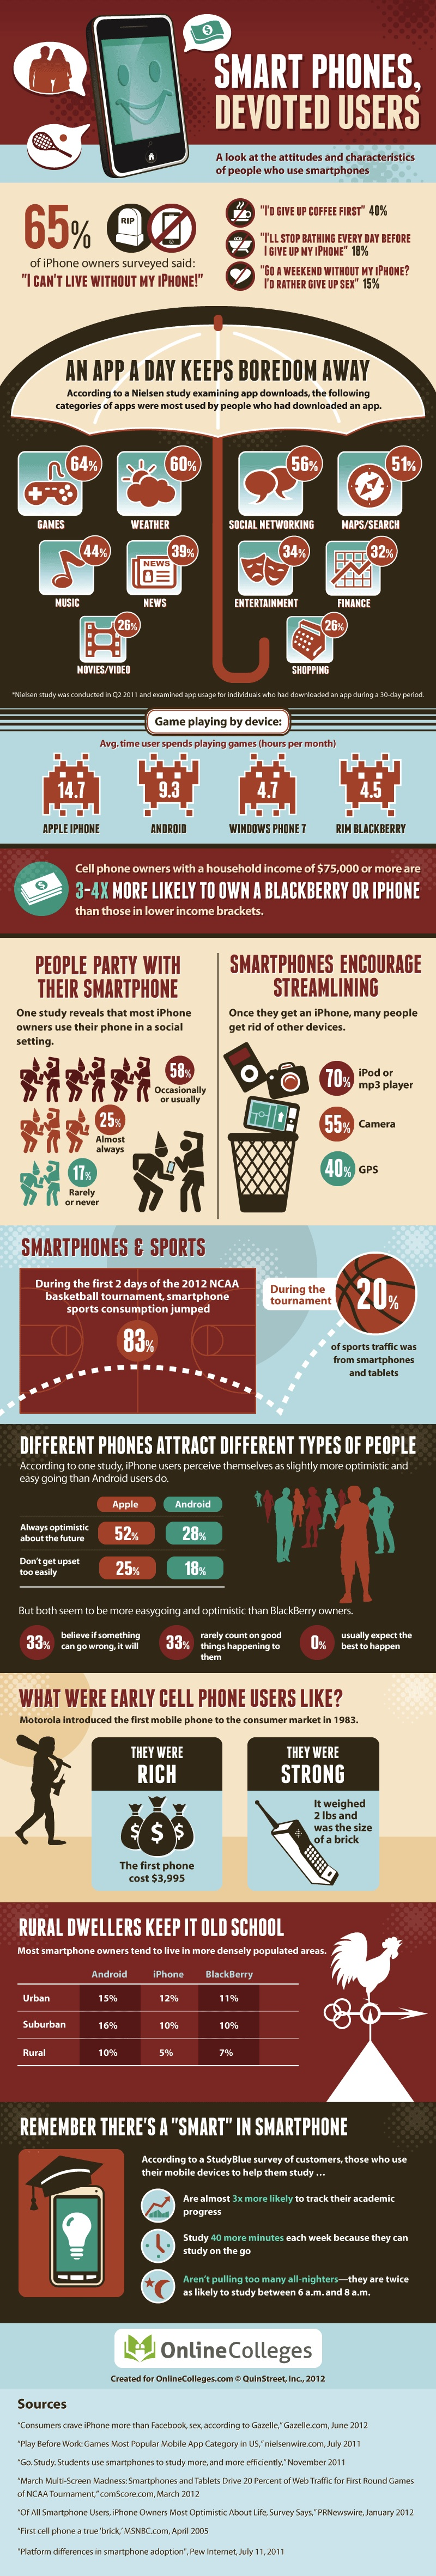 [infographic] Are you addicted to your smartphone?